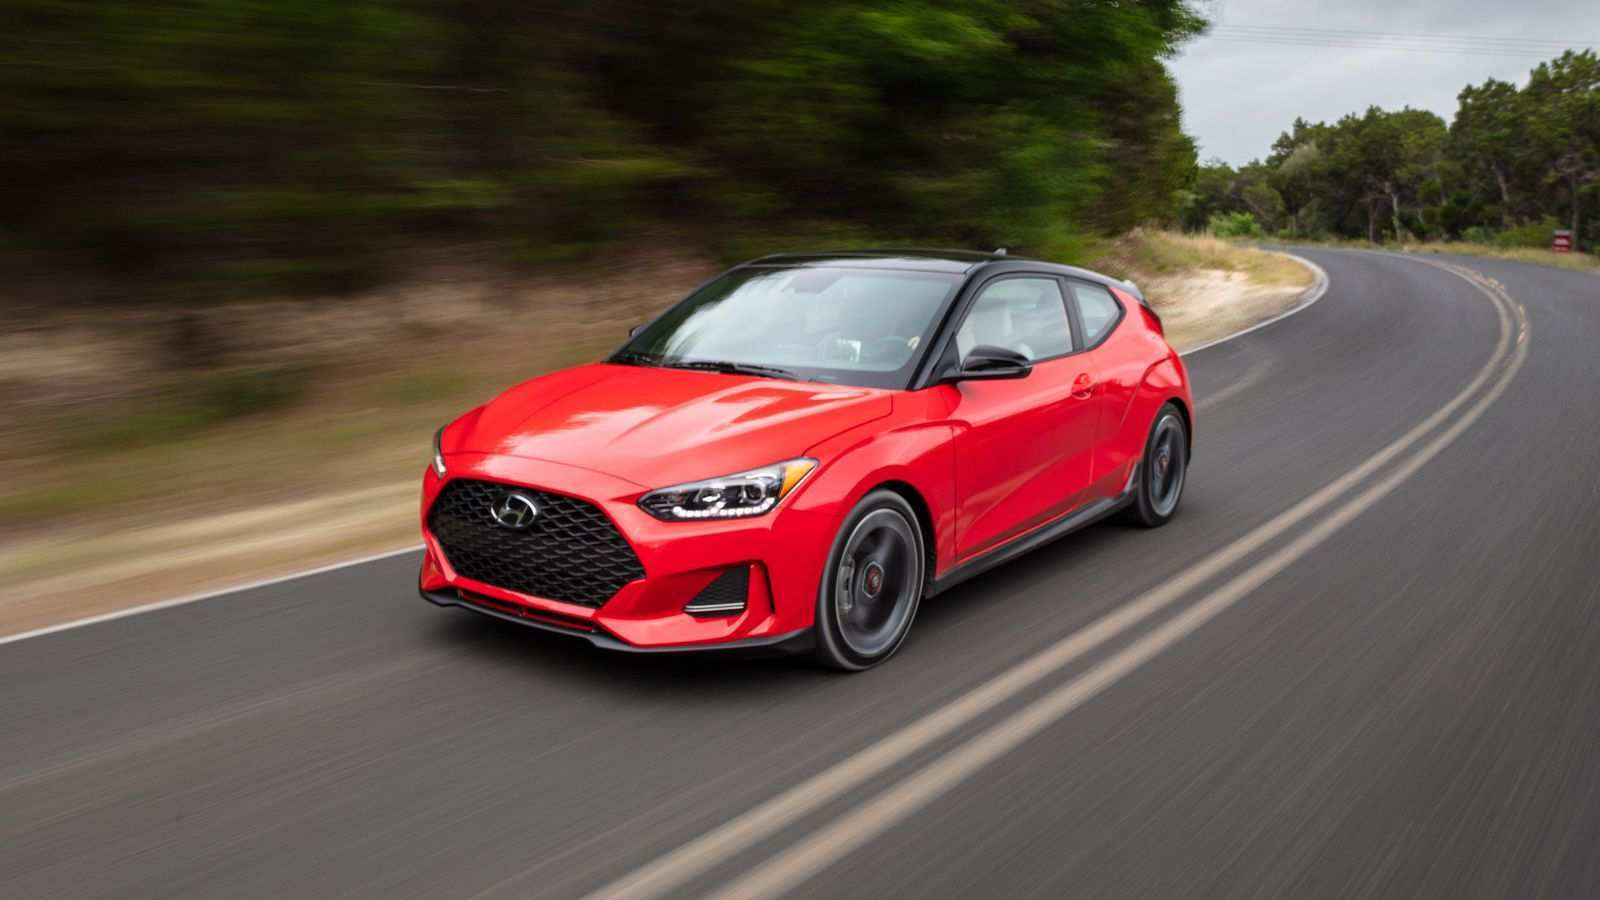 32 Best 2020 Hyundai Veloster Turbo Picture